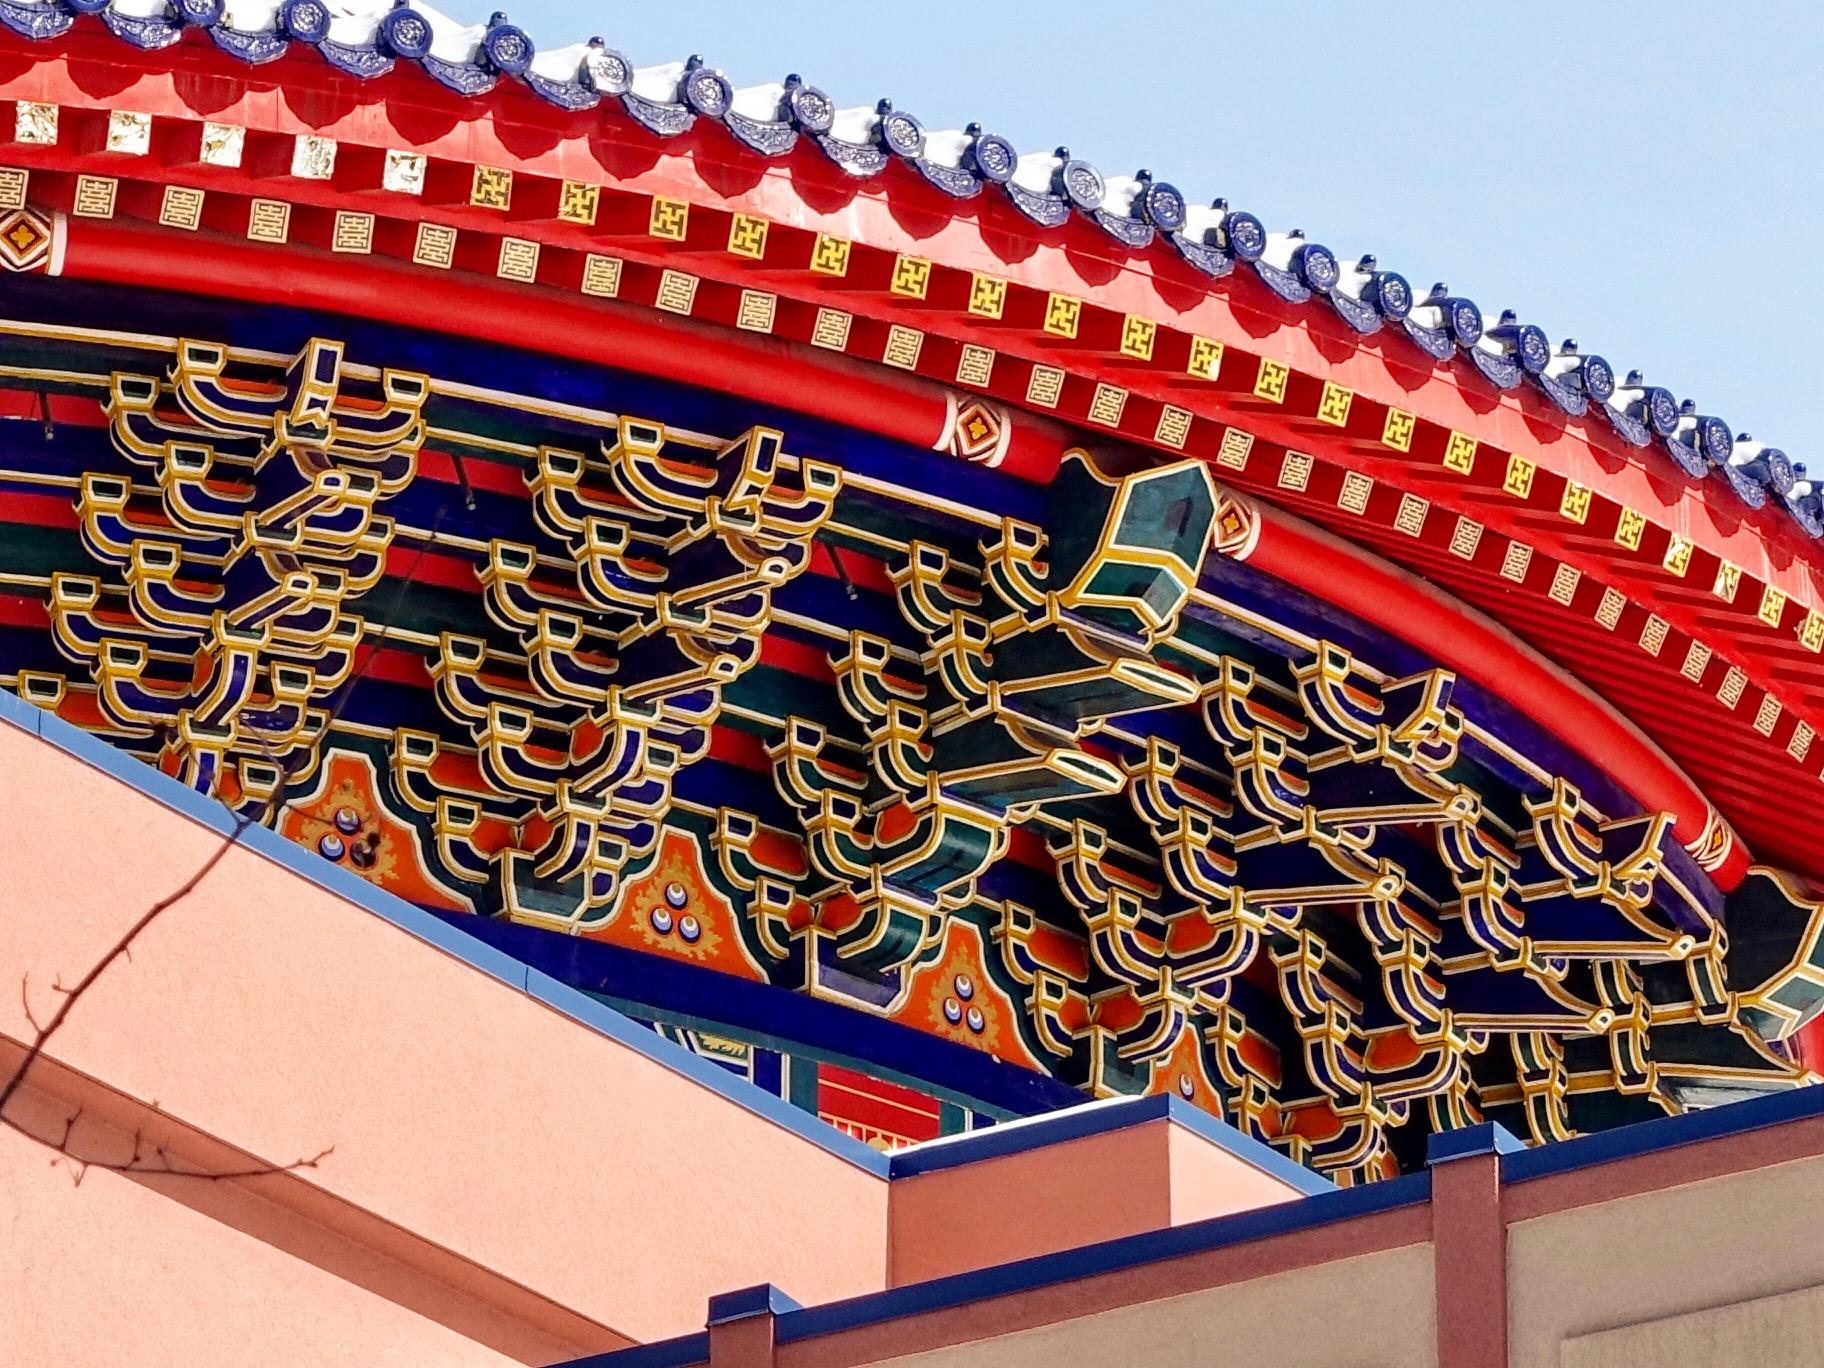 The outside roof of the Chinese Cultural centre